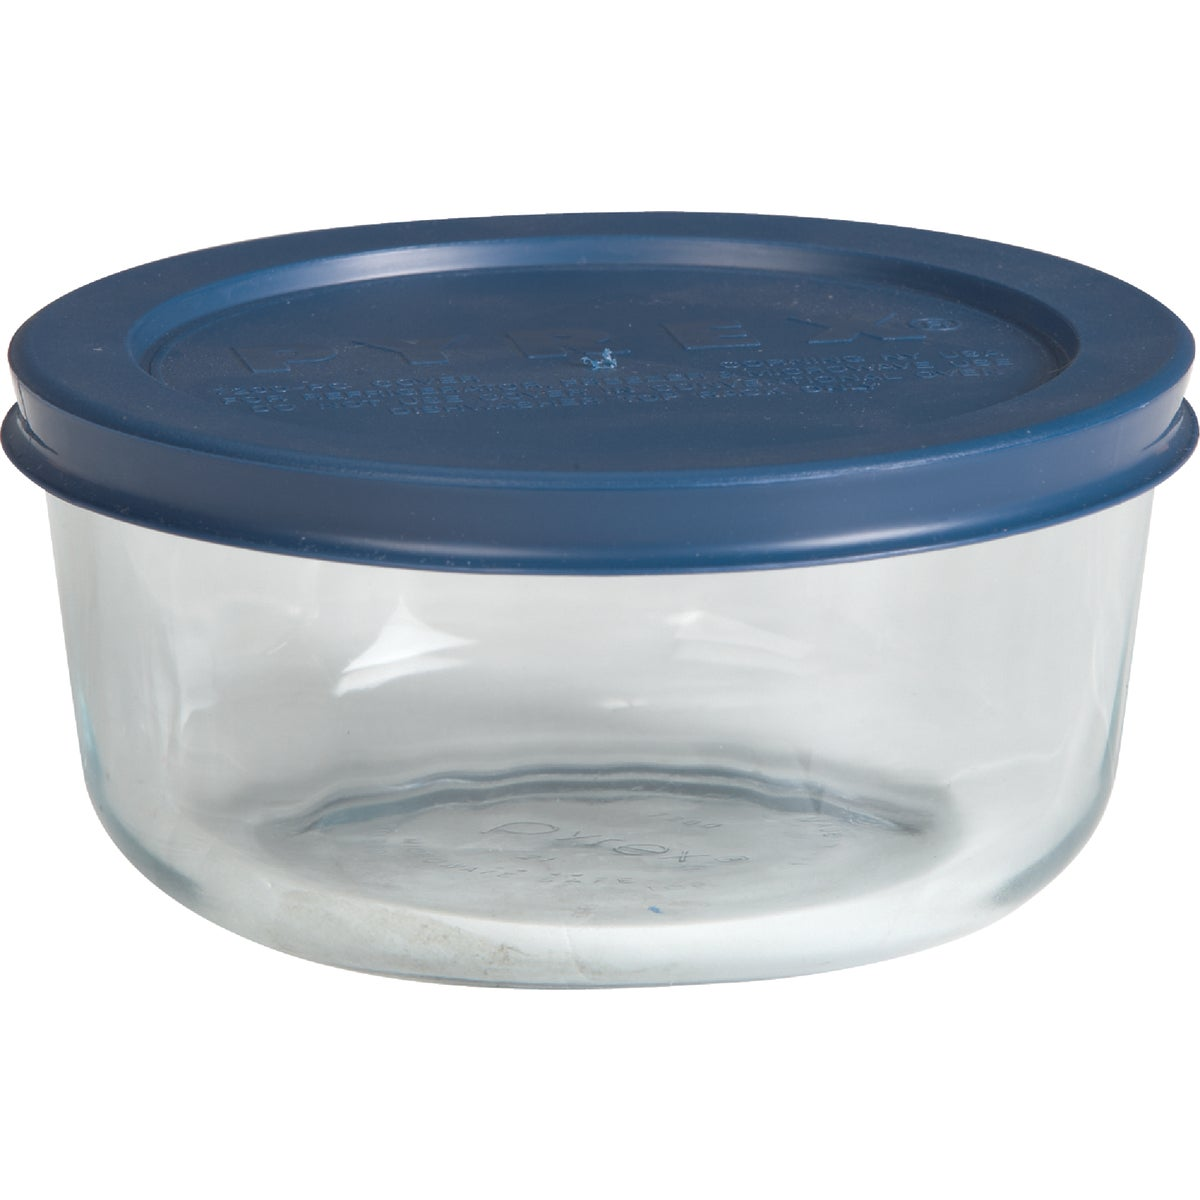 2CUP STORAGE BOWL - 6017399 by World Kitchen